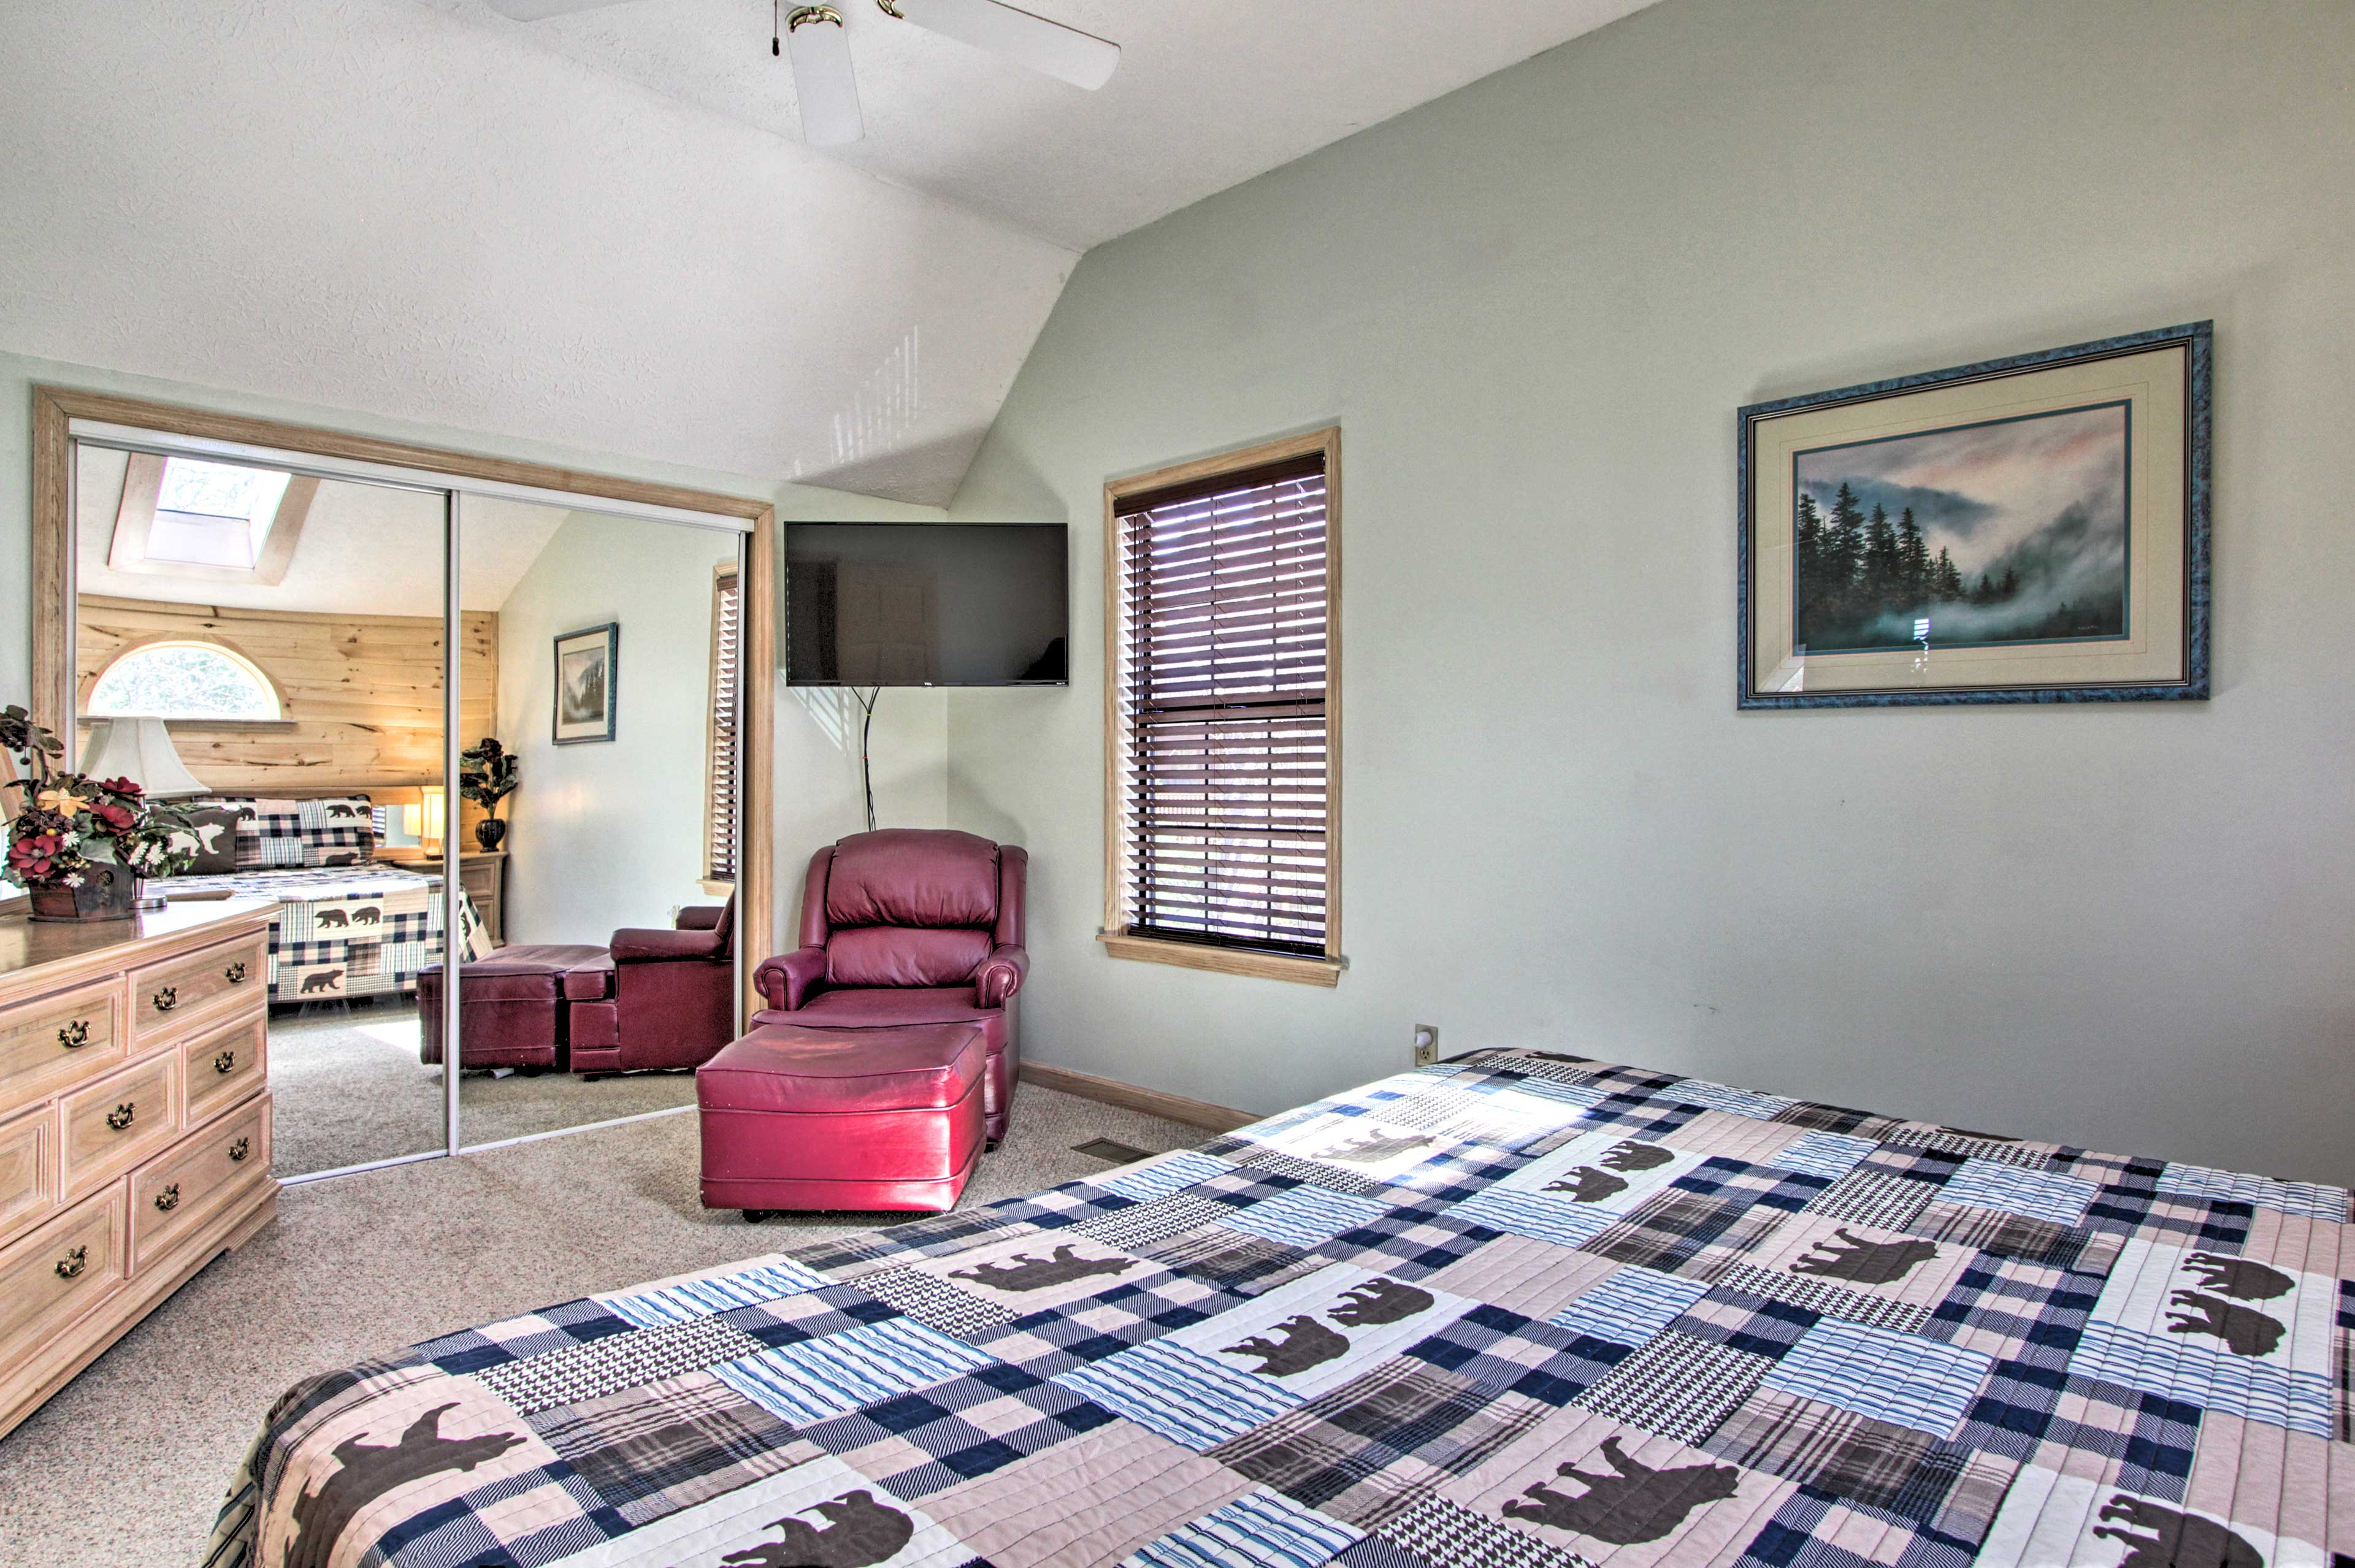 Claim this master bedroom as your own!